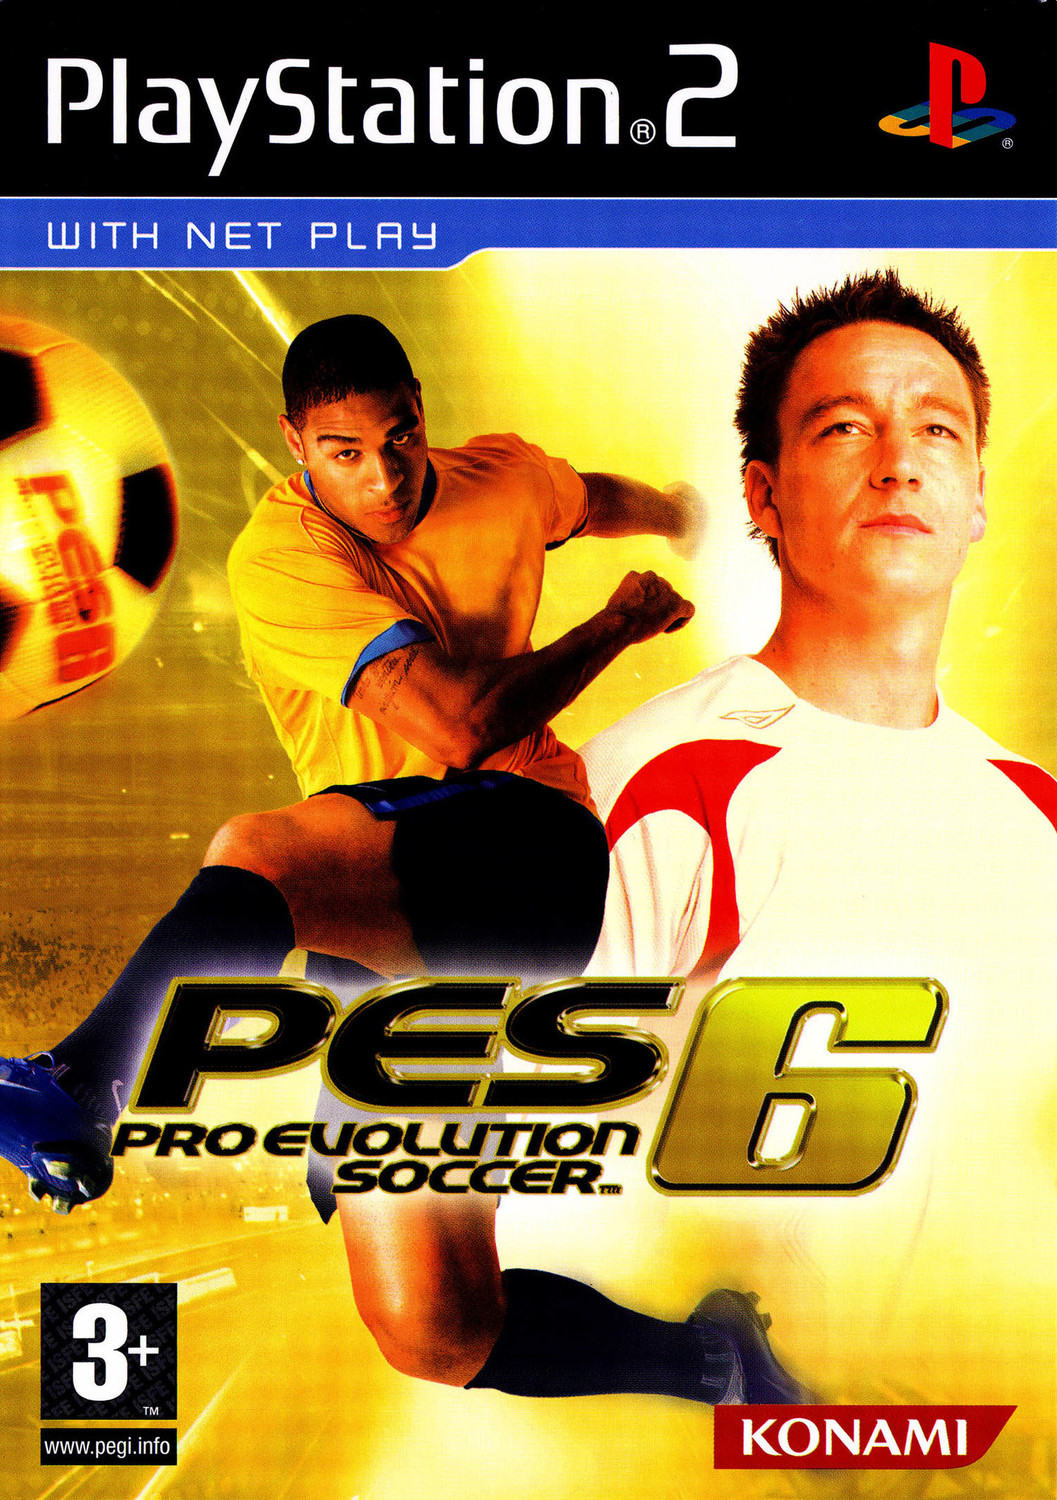 Pro Evolution Soccer 6 - Playstation 2: PS2 game